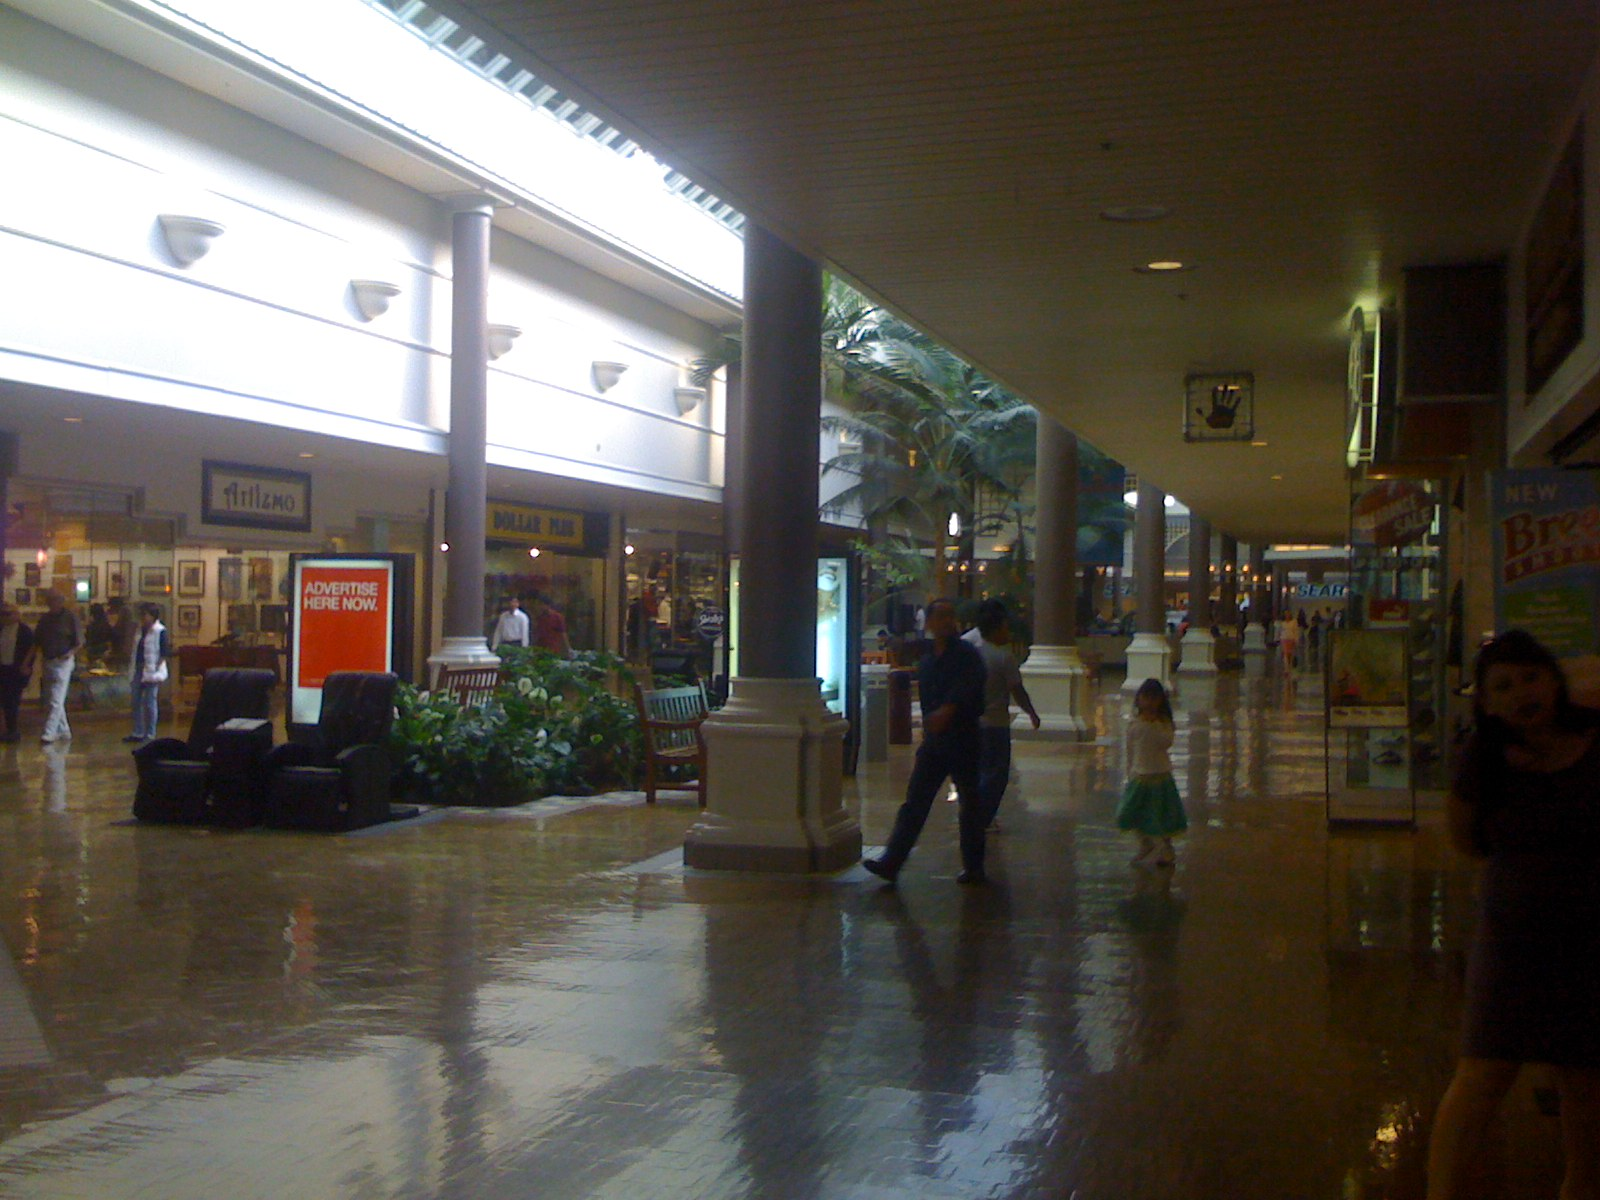 From its commanding location along Highway in San Rafael – the county's oldest and largest city – Northgate Mall has been a part of the local landscape for 45 years.